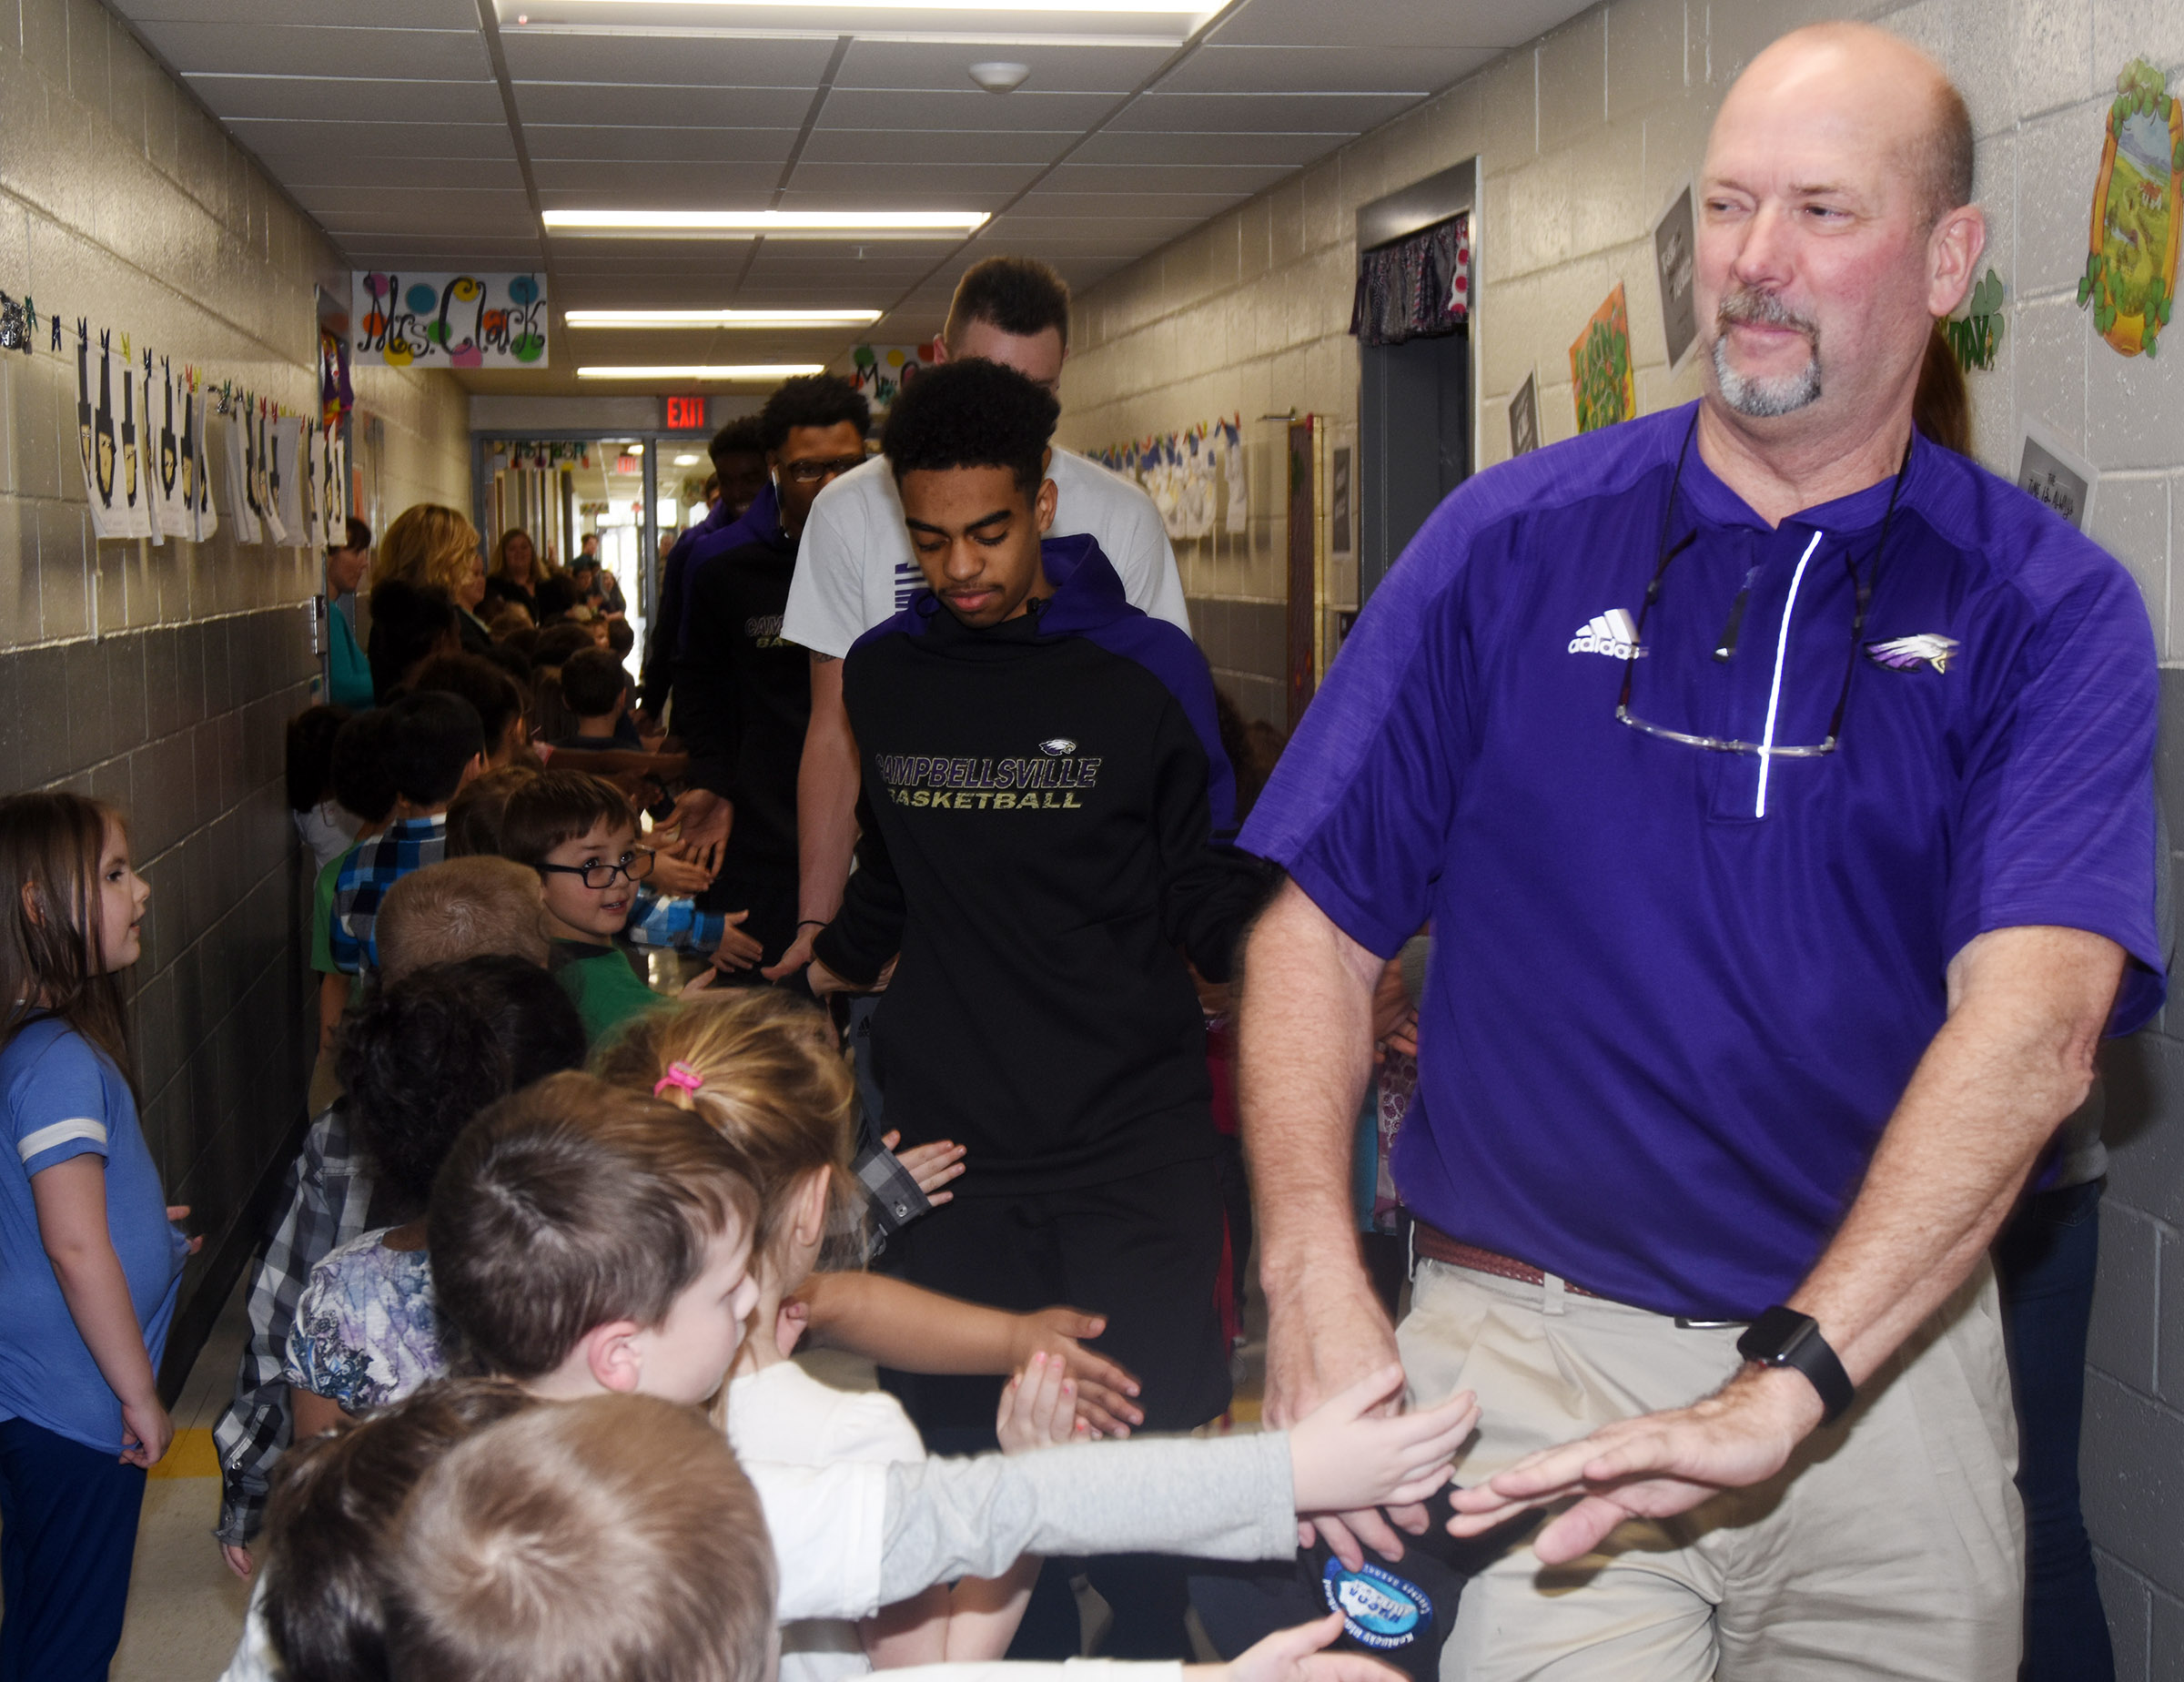 CHS boys' basketball head coach Tim Davis high-fives CES students during the Eagle Walk.